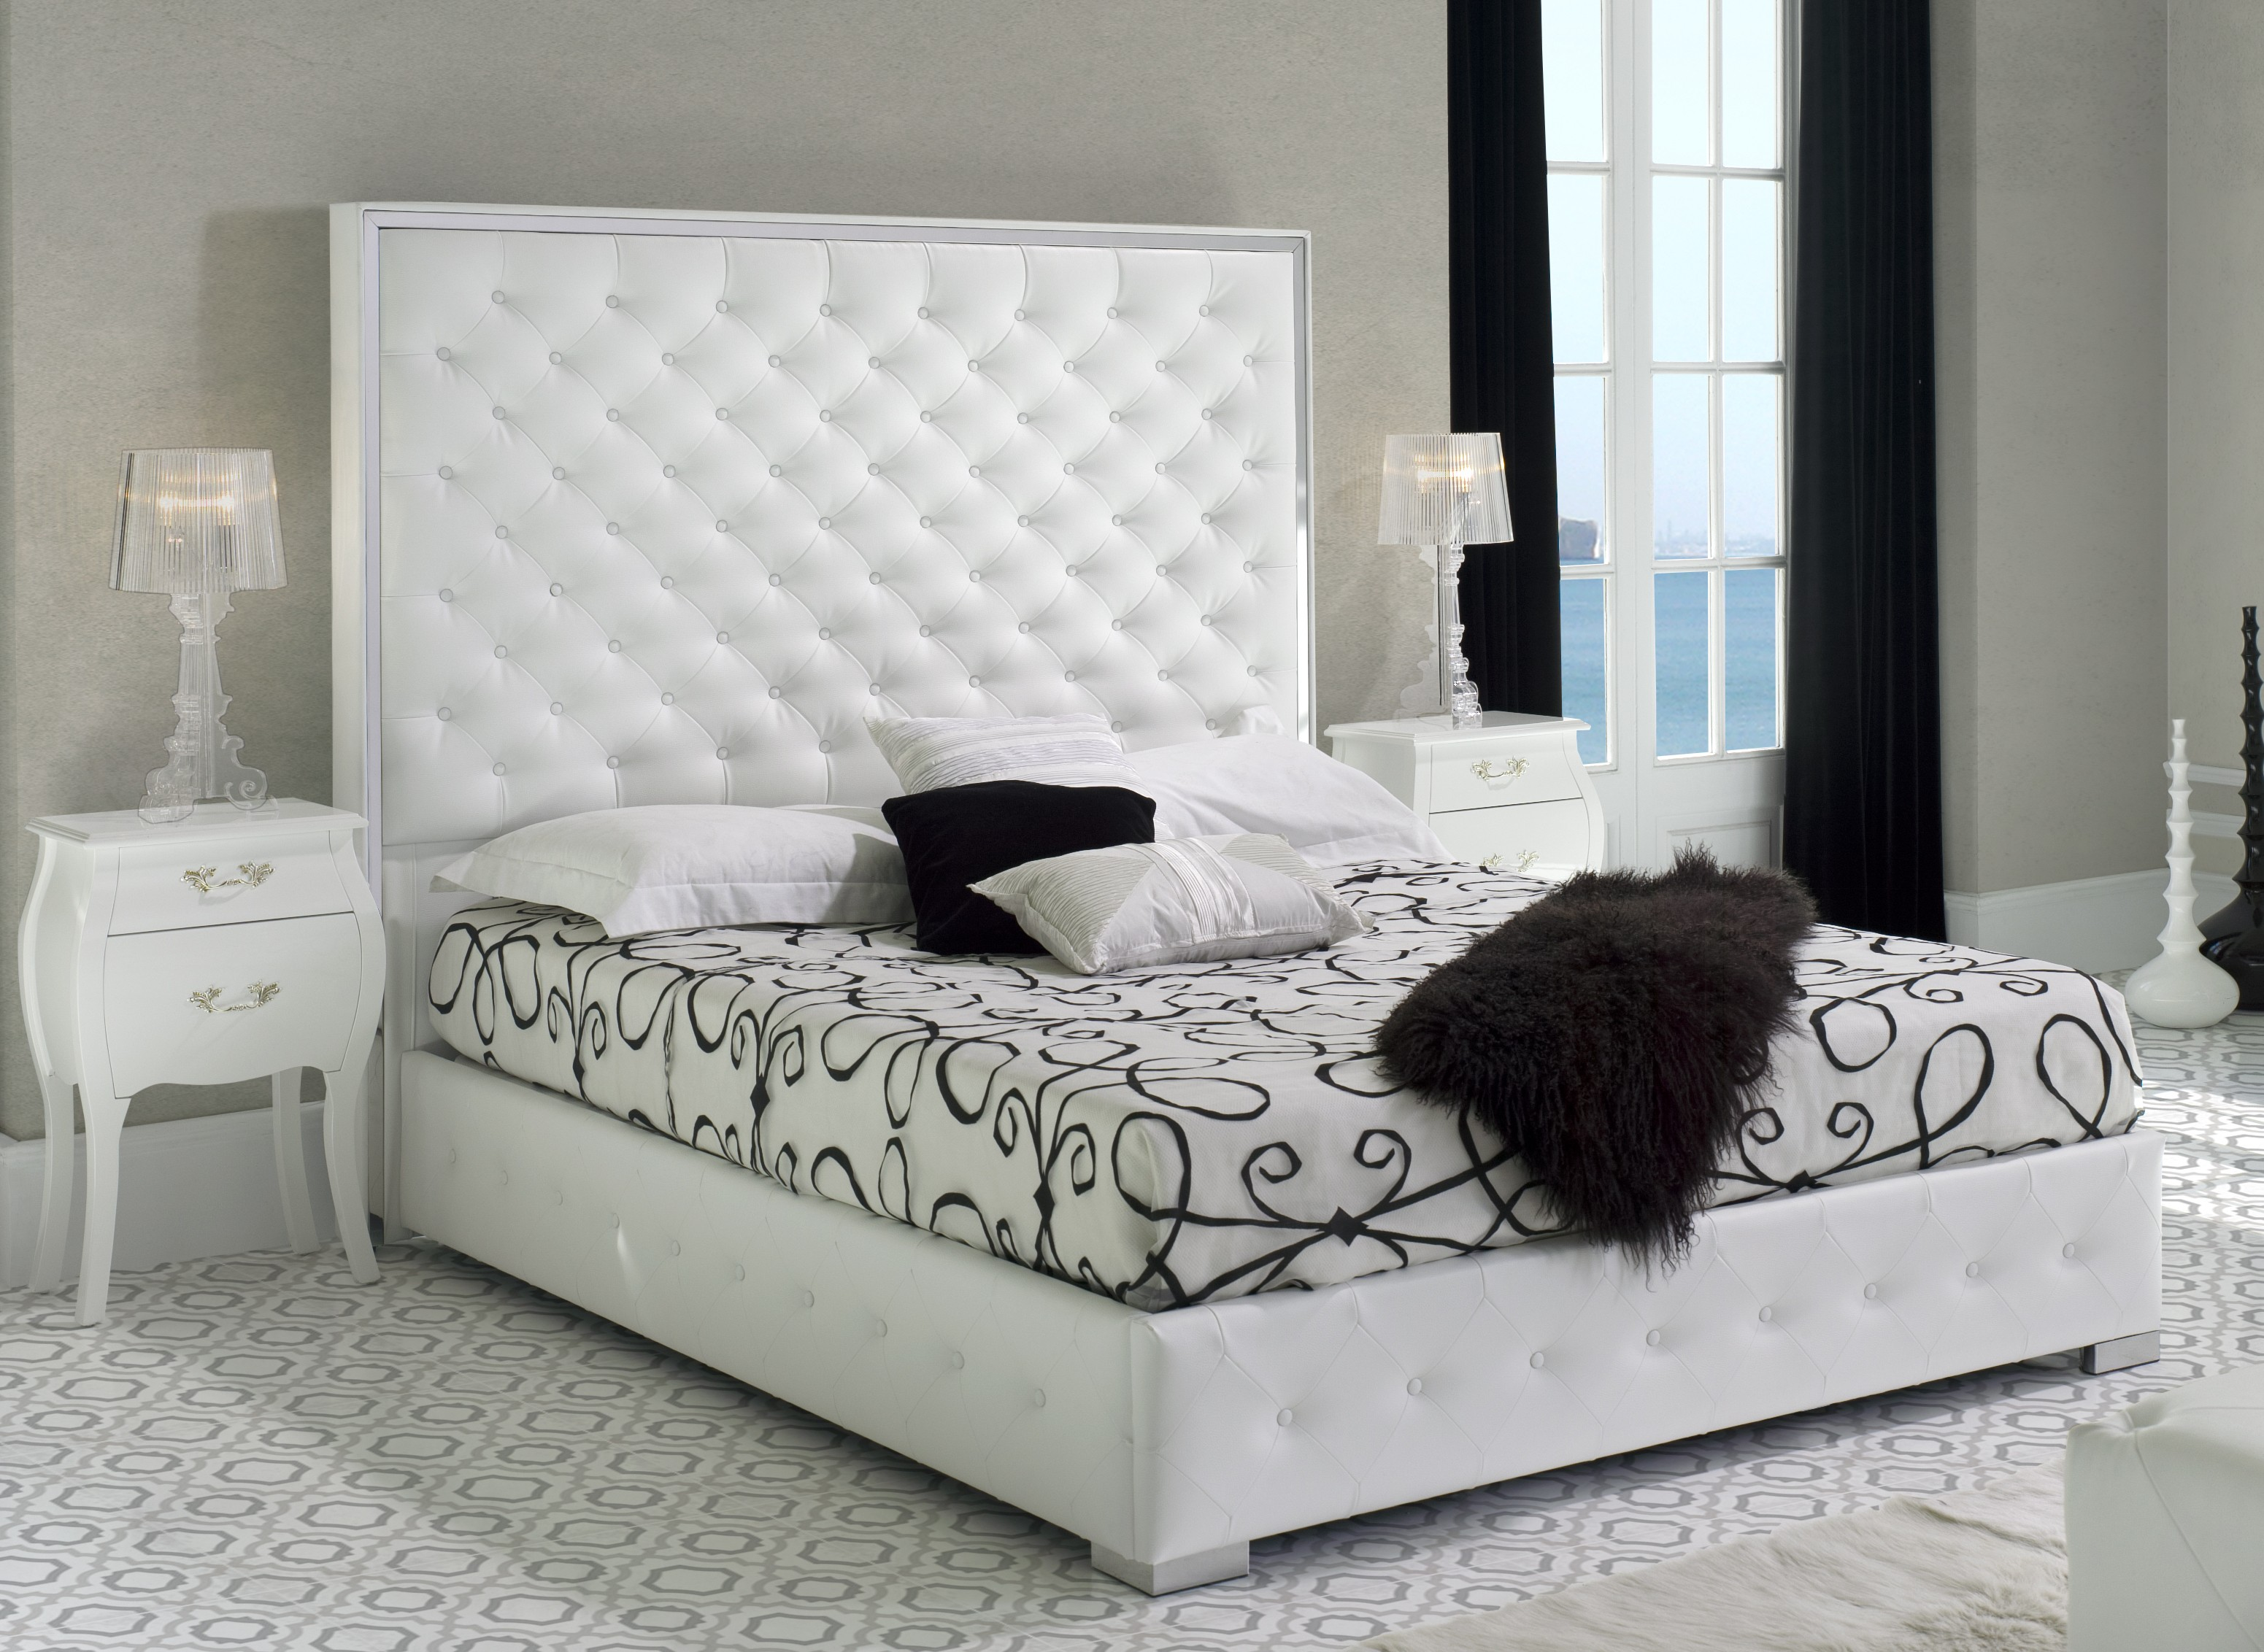 lit king size capitonn simili blanc bony 160 couchage 160 x 200 cm. Black Bedroom Furniture Sets. Home Design Ideas